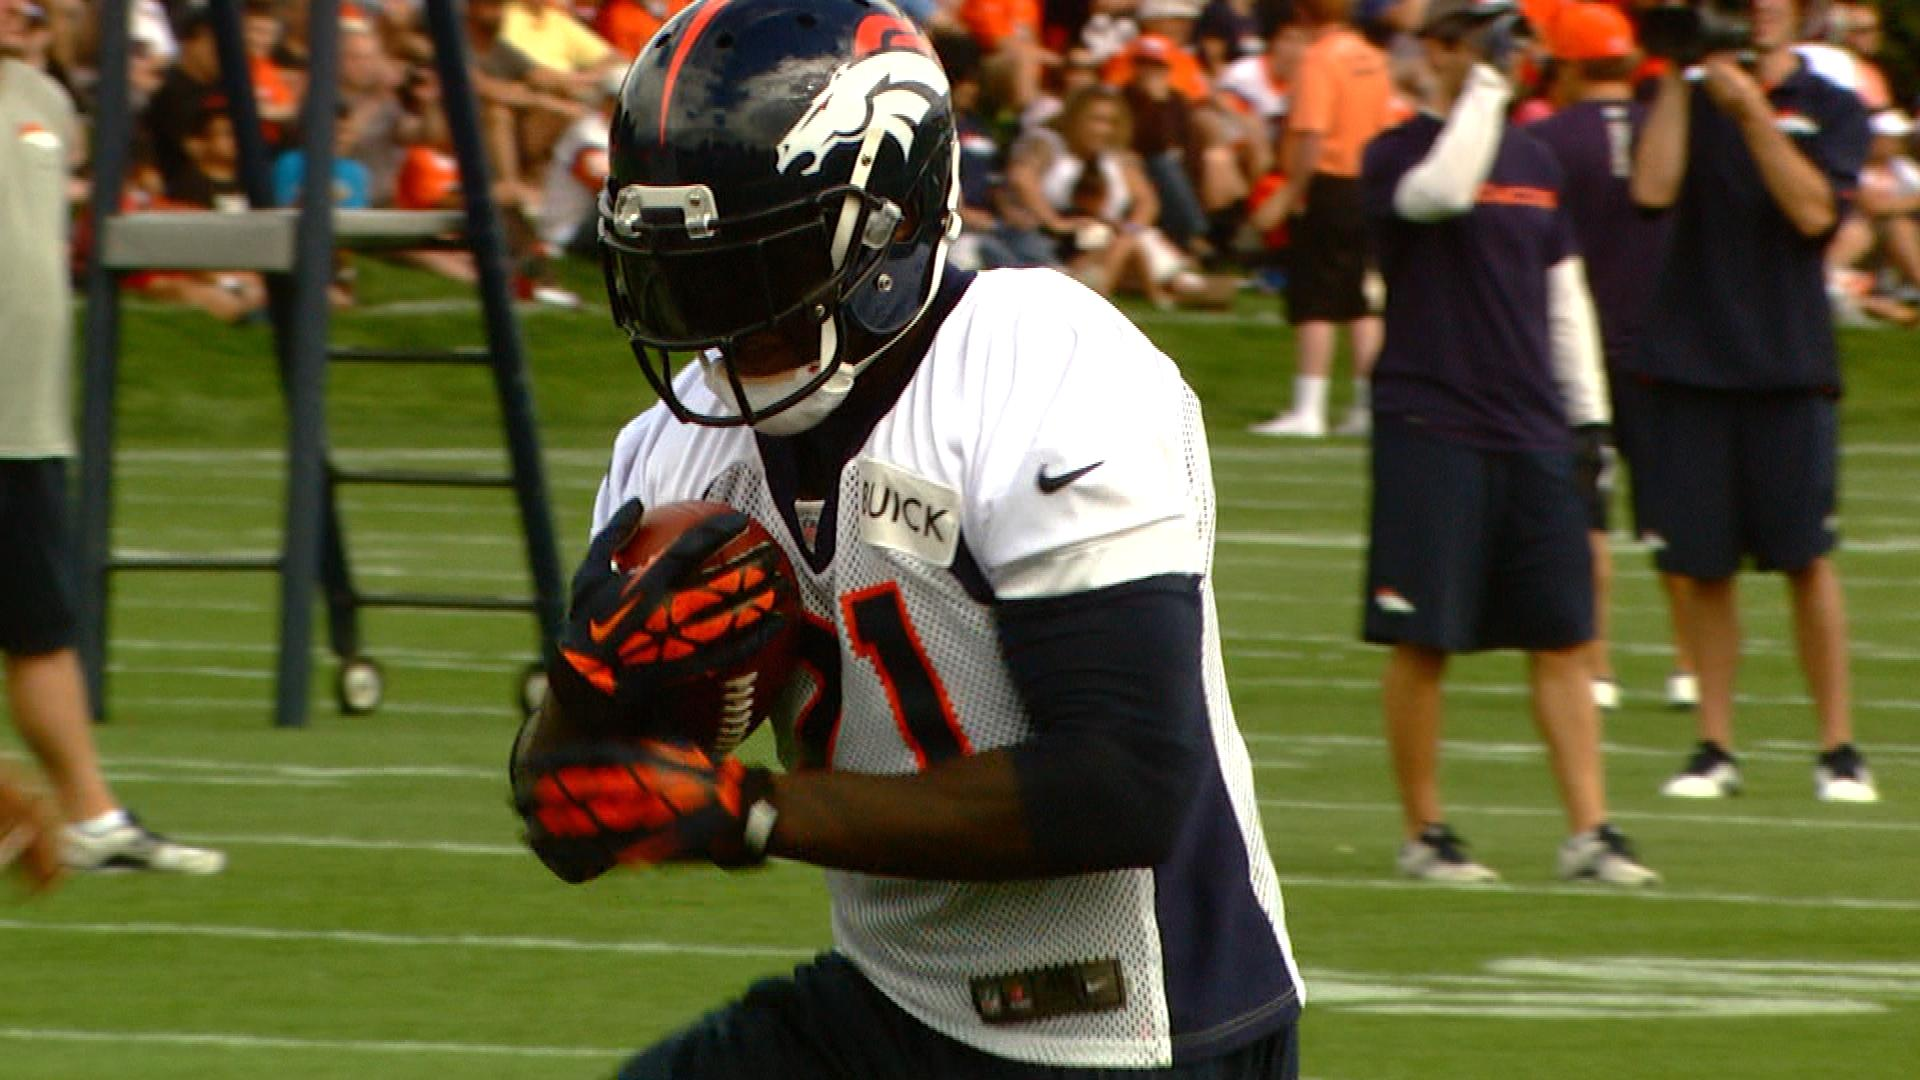 Running back Ronnie Hillman at training camp (credit: CBS)